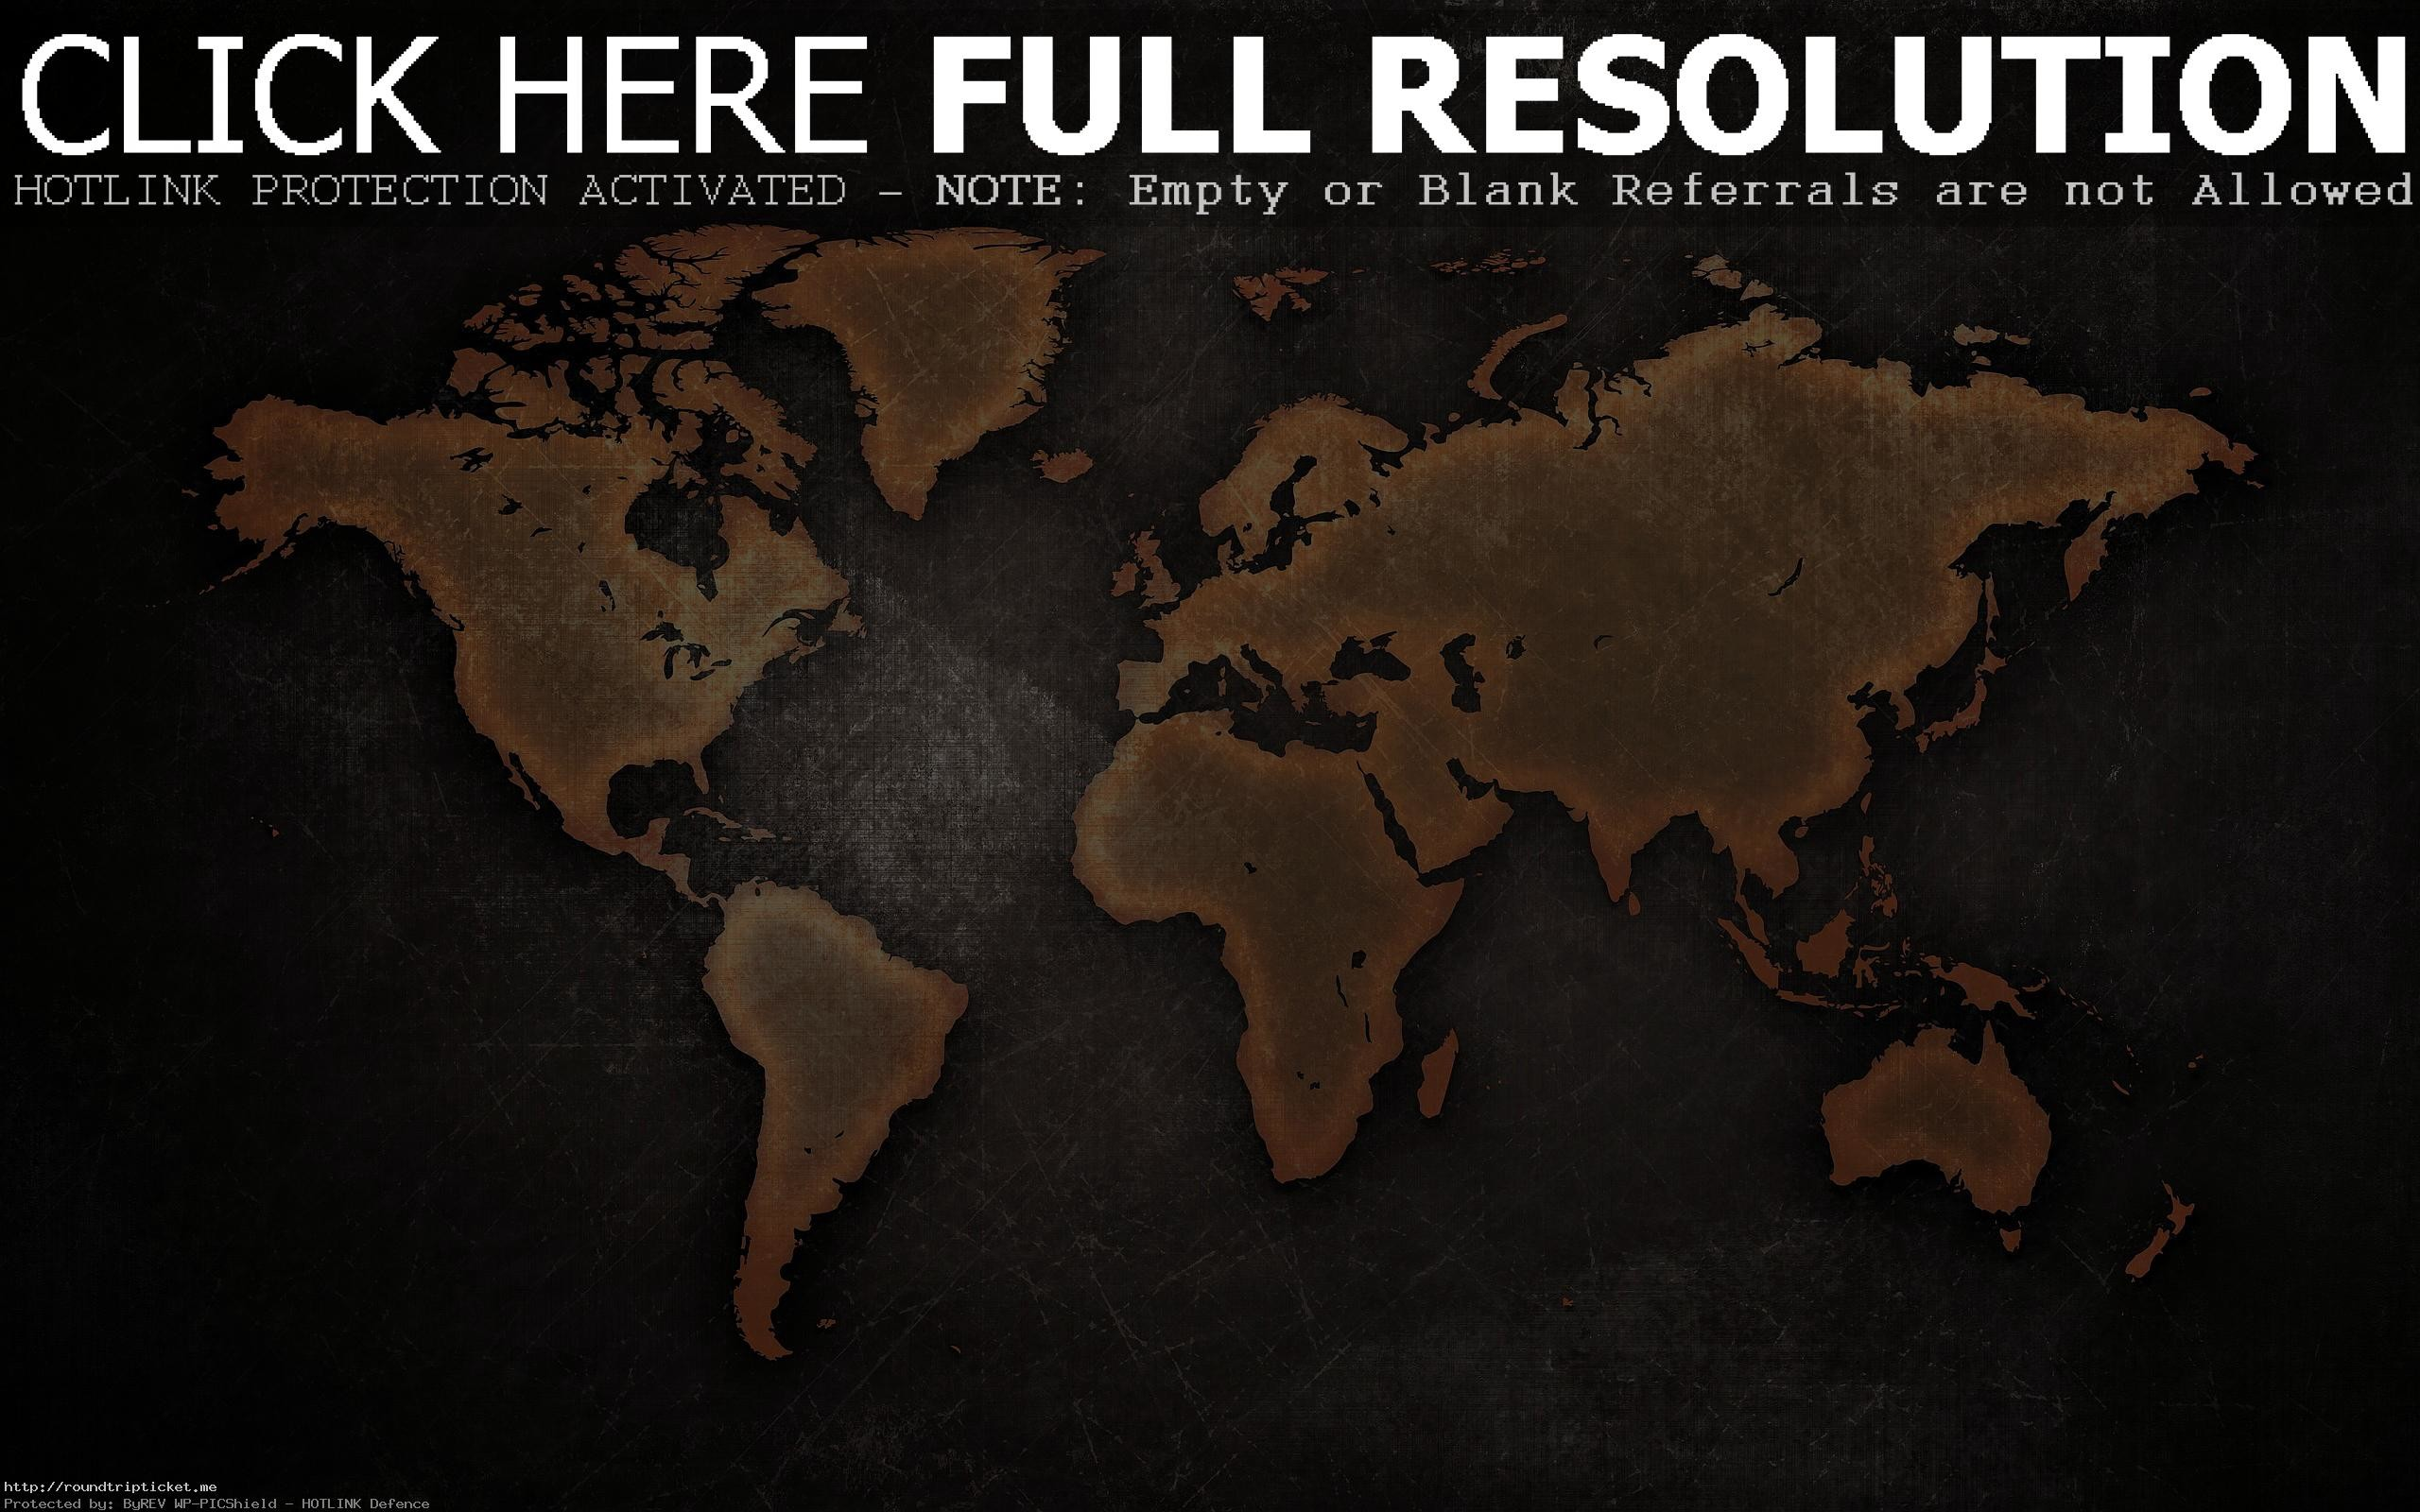 Wallpaper of world map 62 images 2560x1600 diagram of cool world map pics new gumiabroncs Image collections